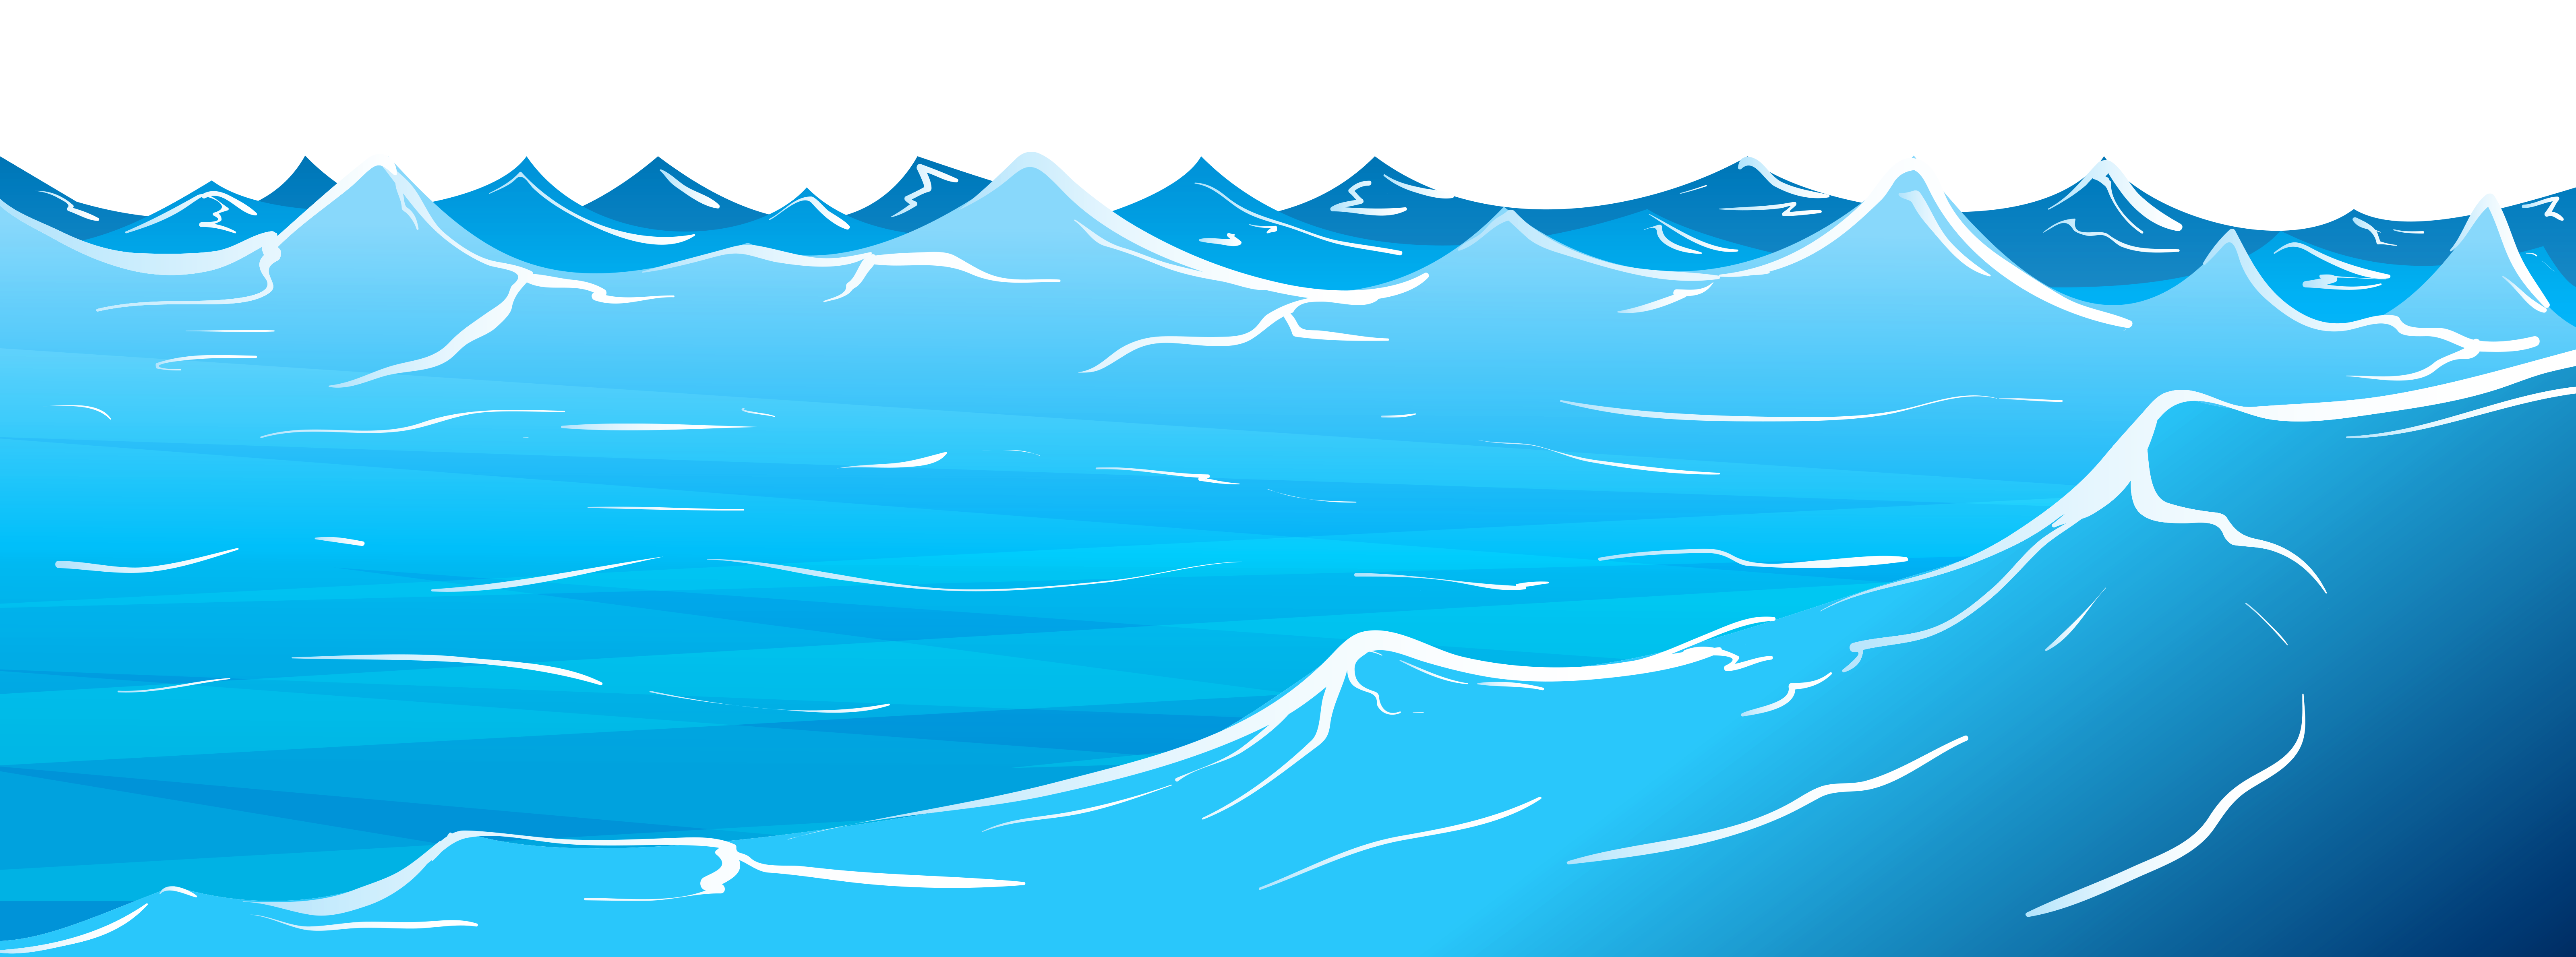 Waves ocean water clipart